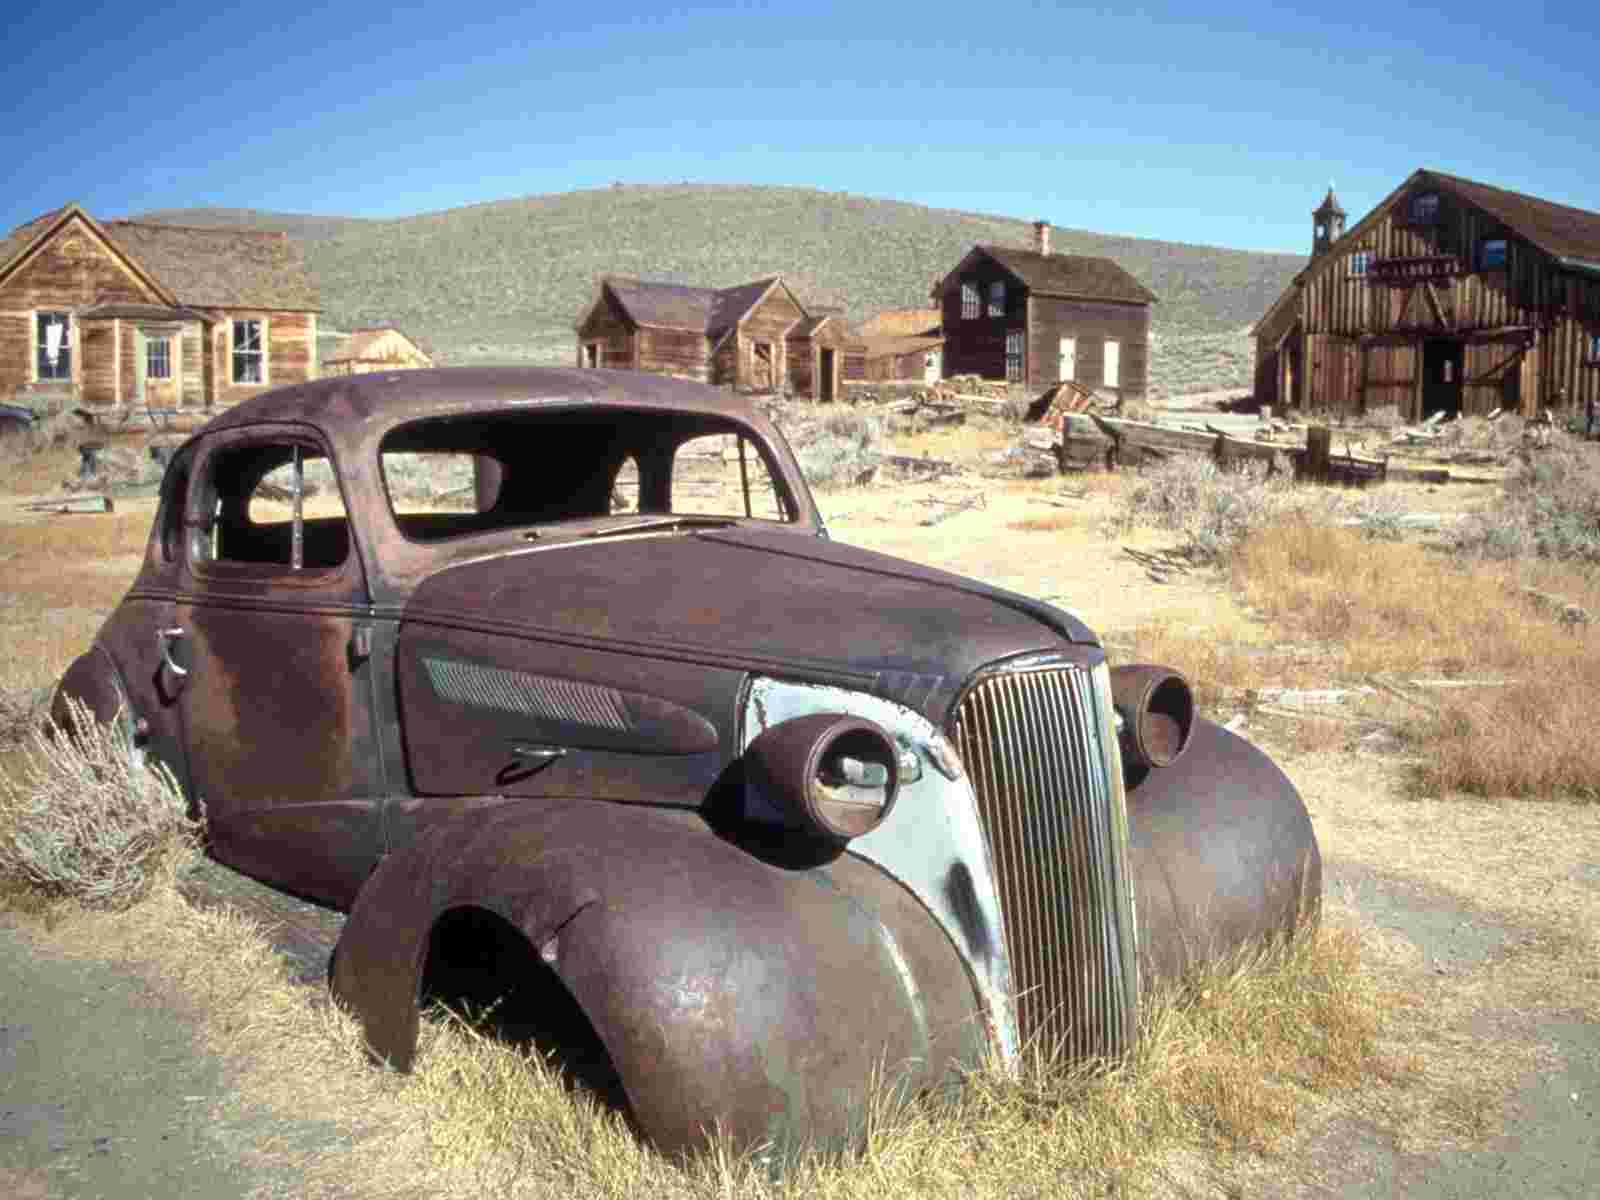 download By Bodie Ghost Town California 1600x1200 ID 584023 1600x1200